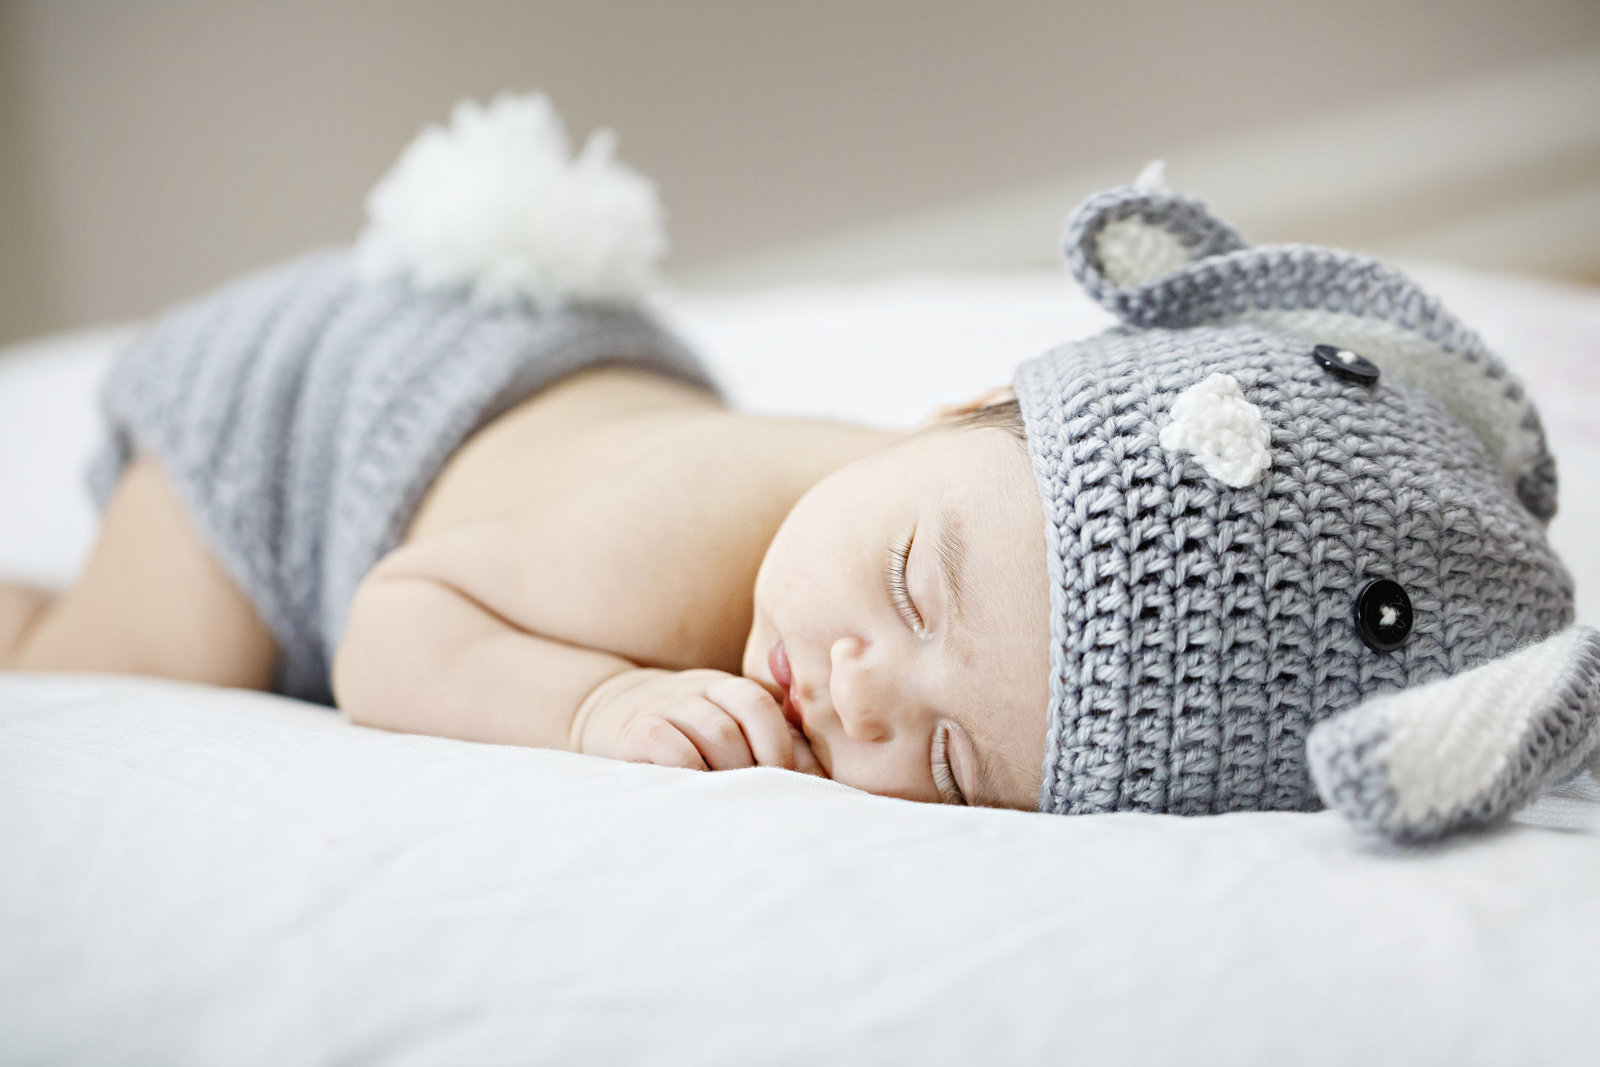 AmyAnaiz_Miami_Florida_Newborn_Session_021